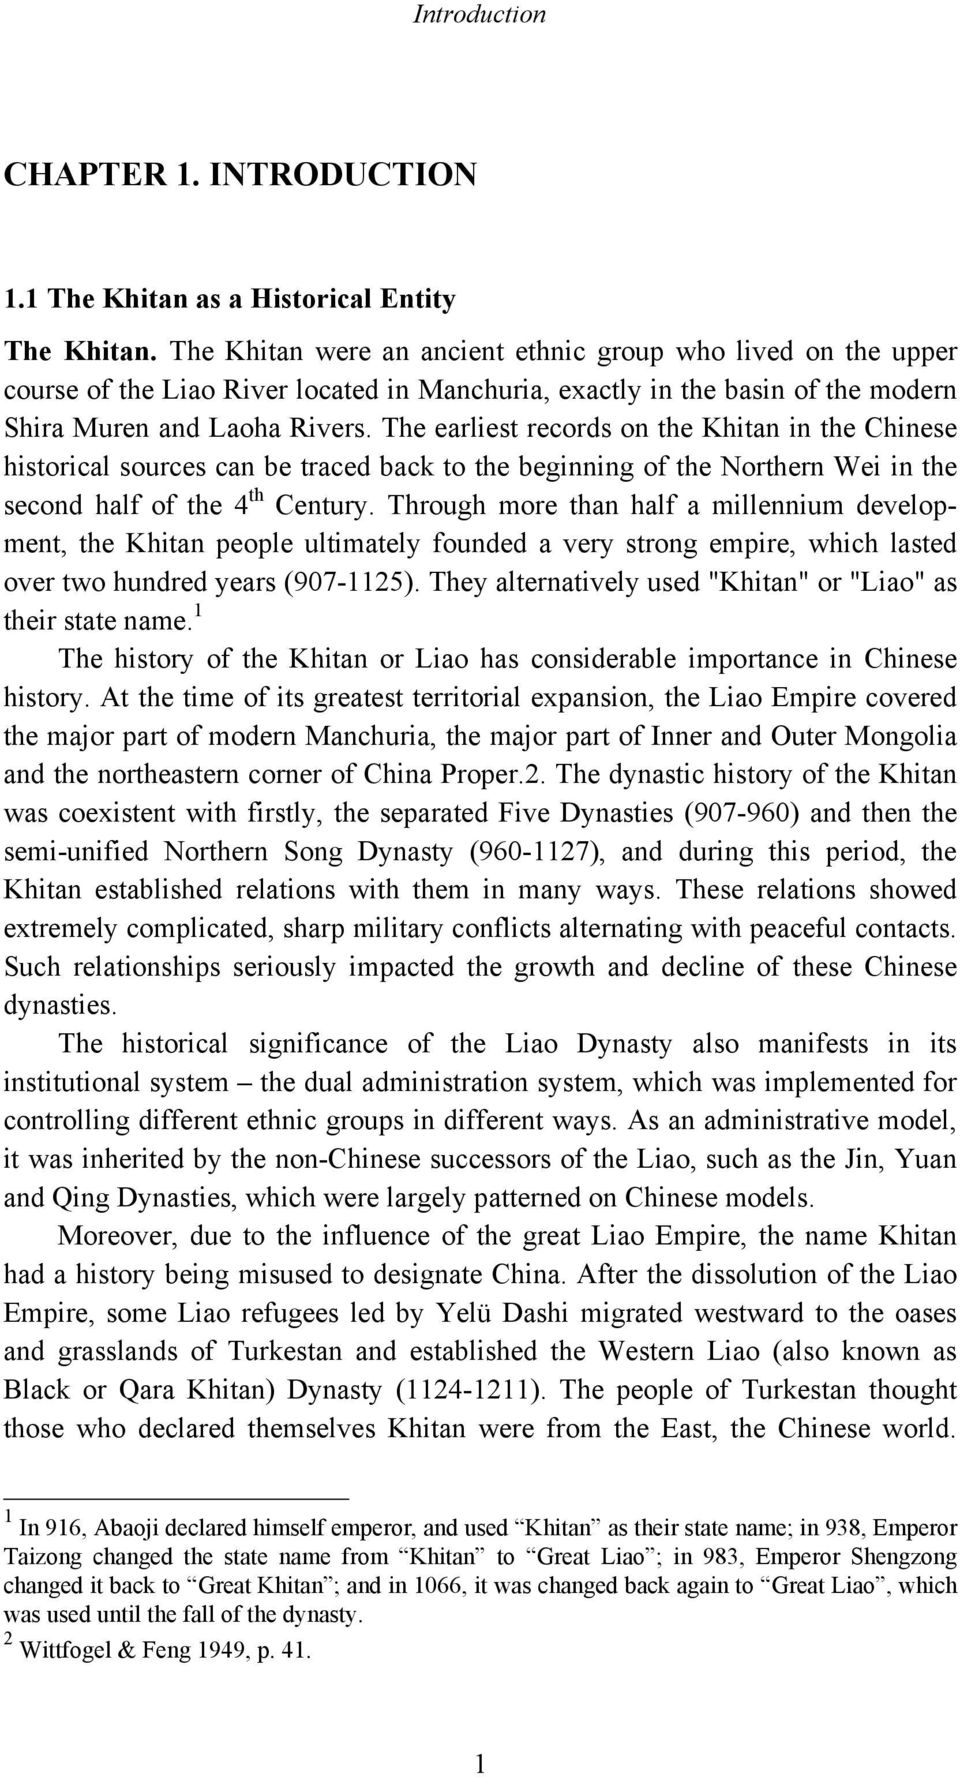 The earliest records on the Khitan in the Chinese historical sources can be traced back to the beginning of the Northern Wei in the second half of the 4 th Century.